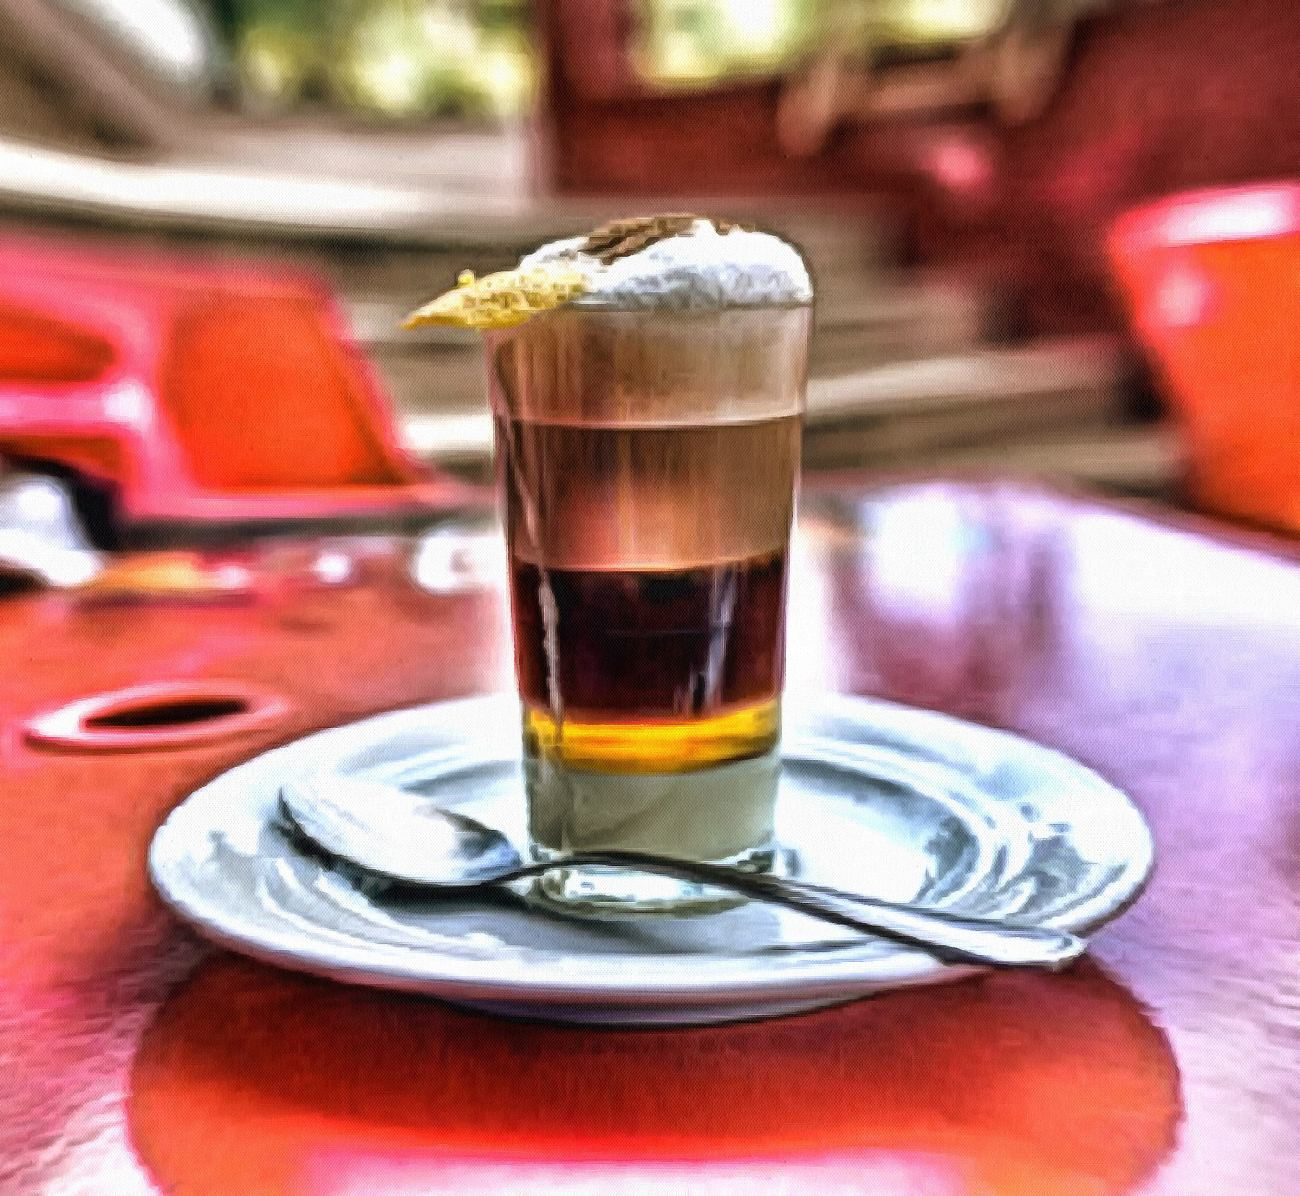 A cup of coffee in Tenerife (Spain)